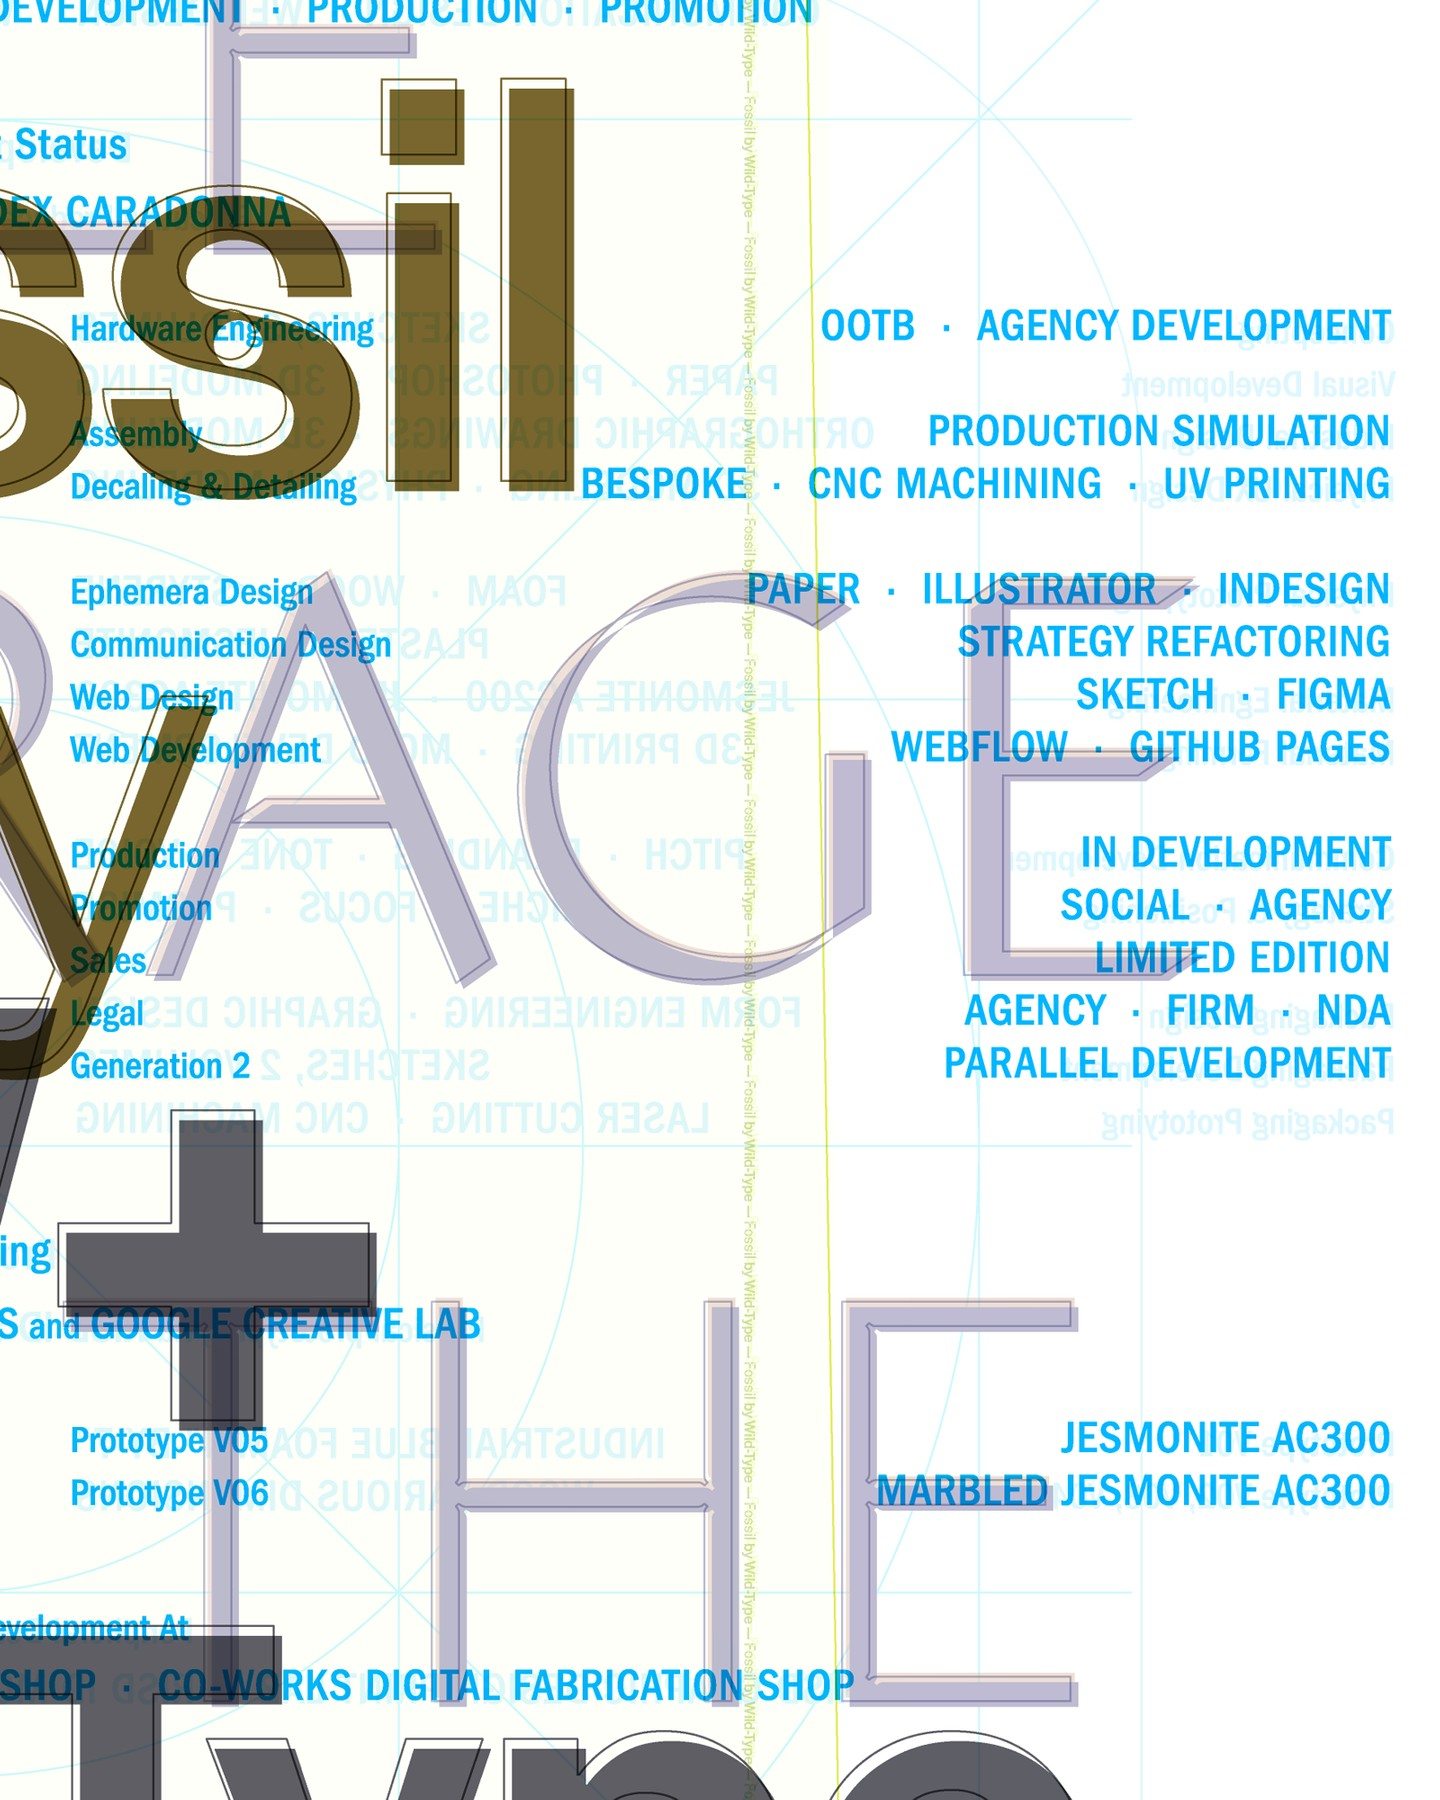 fossil-poster-detail-5.png